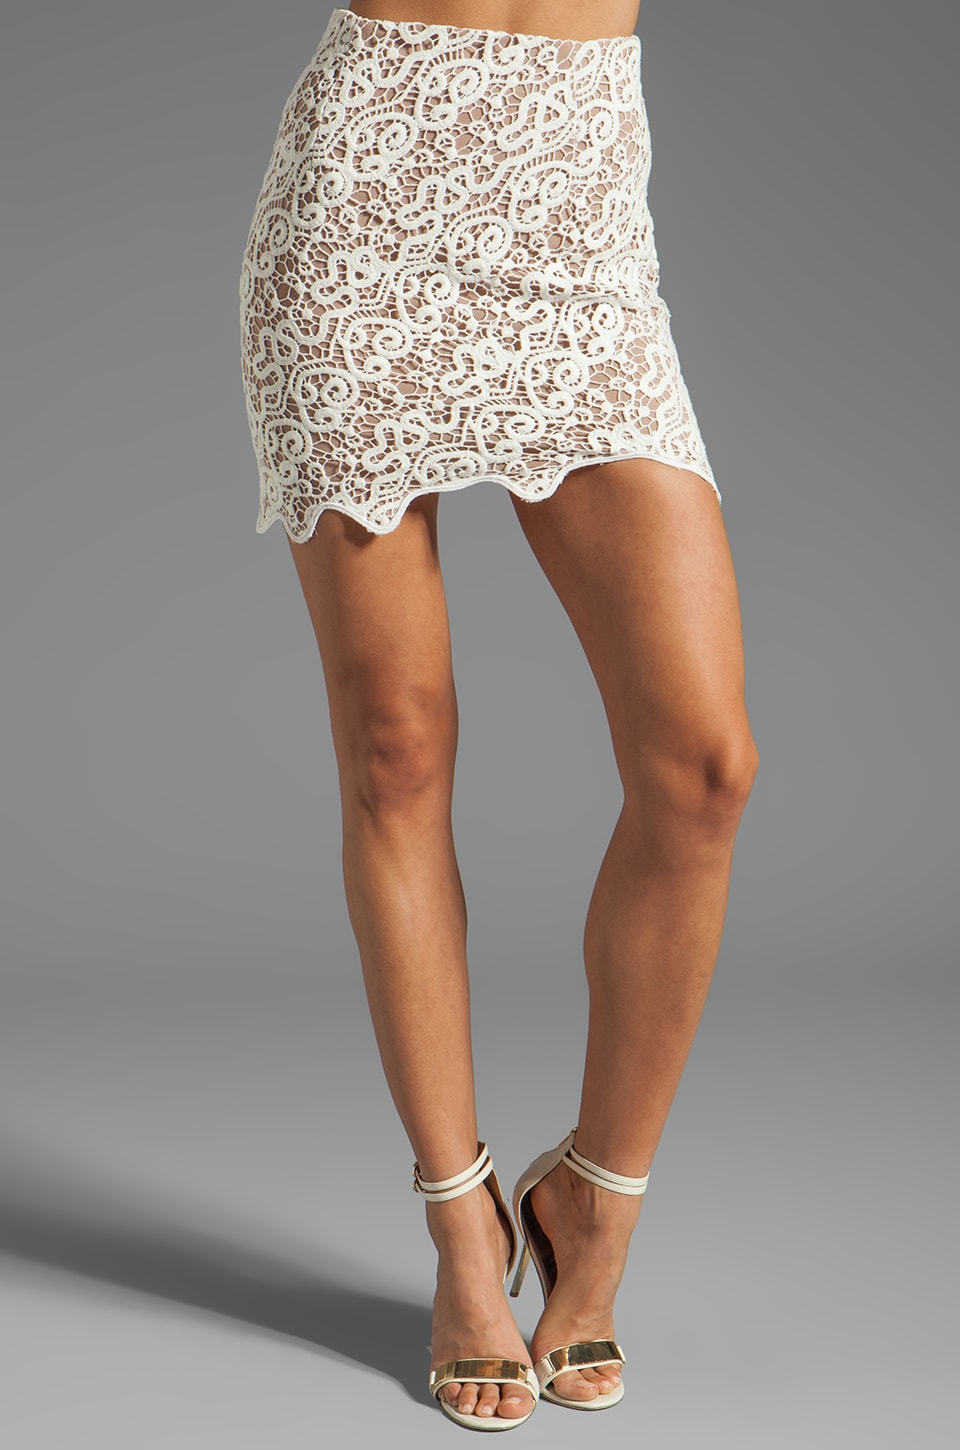 bless'ed are the meek Depths Skirt in Ivory